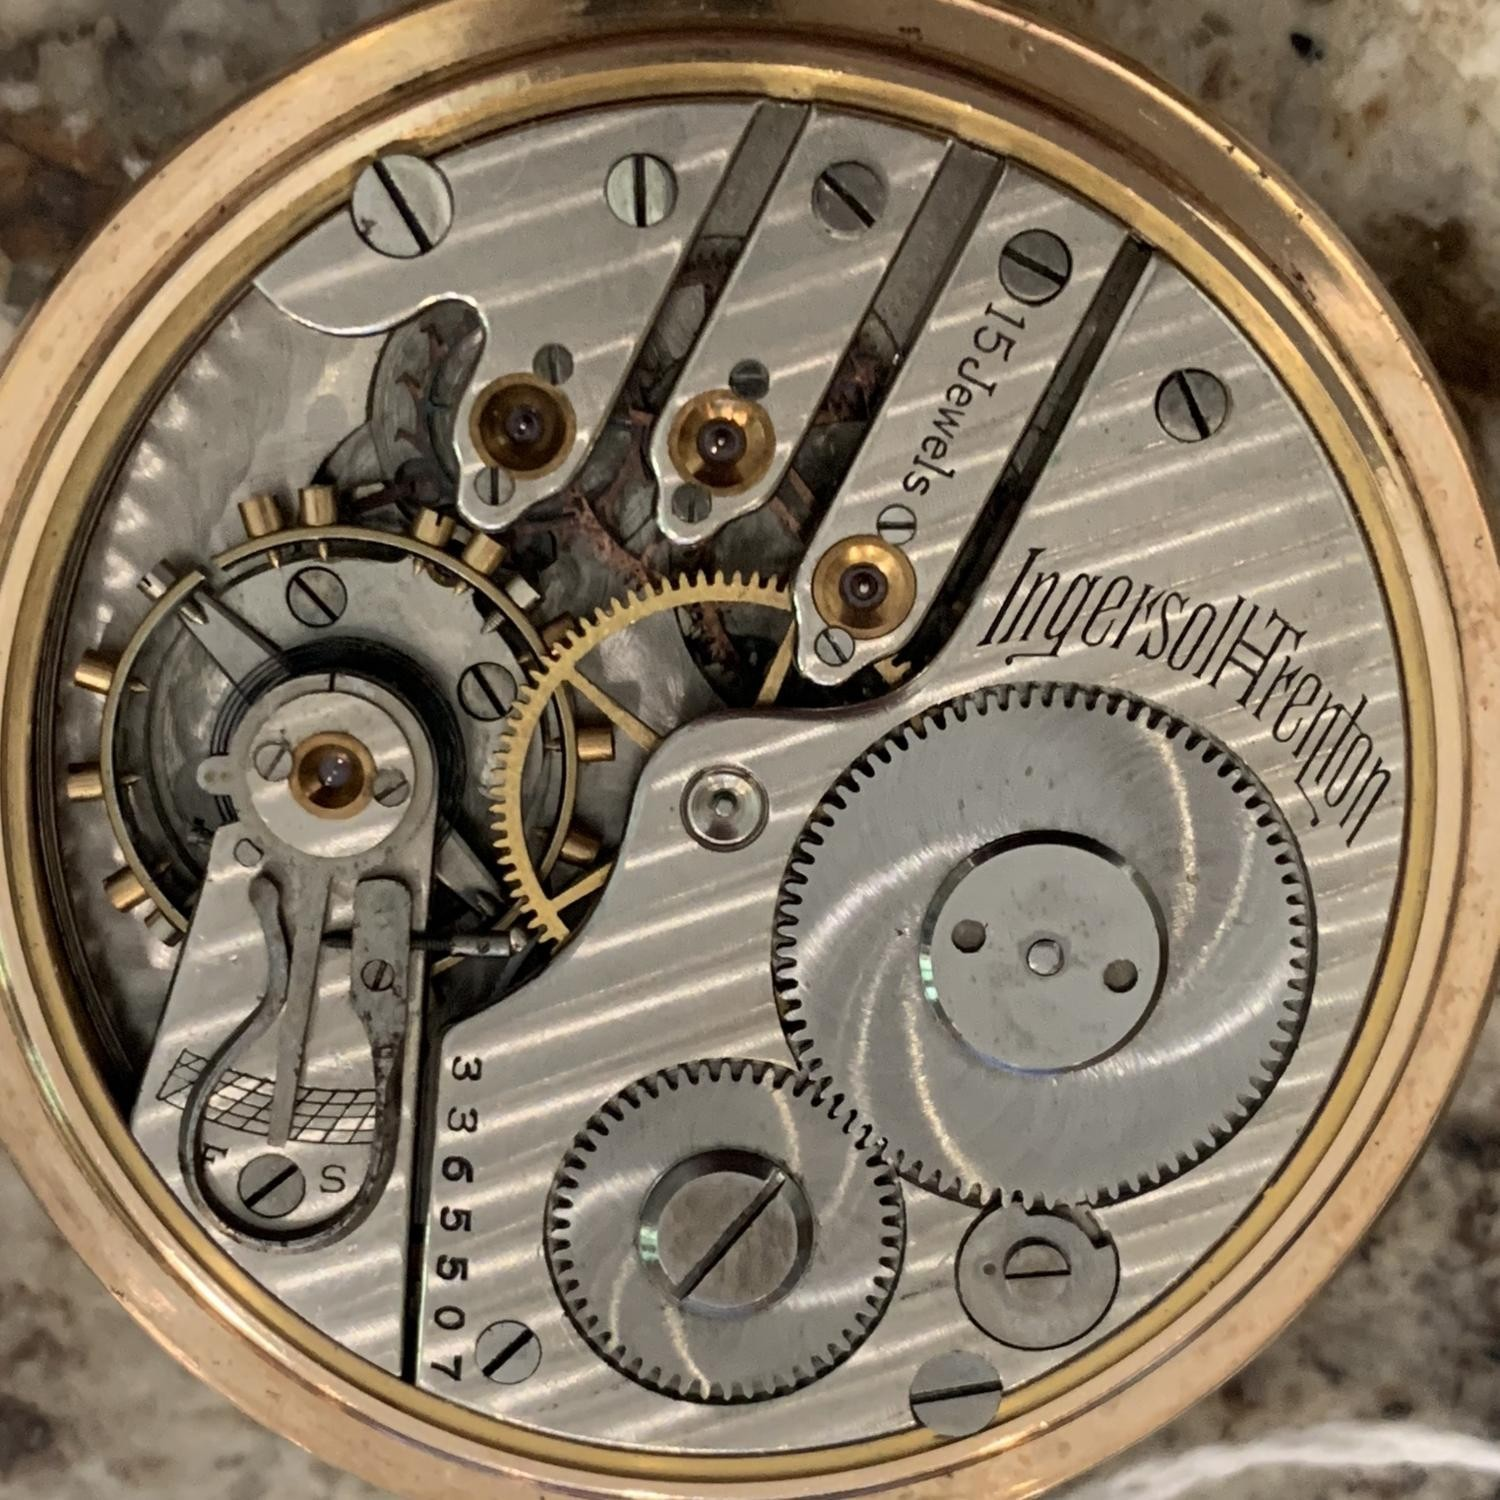 Image of Ingersoll Watch Co.  #3365507 Movement